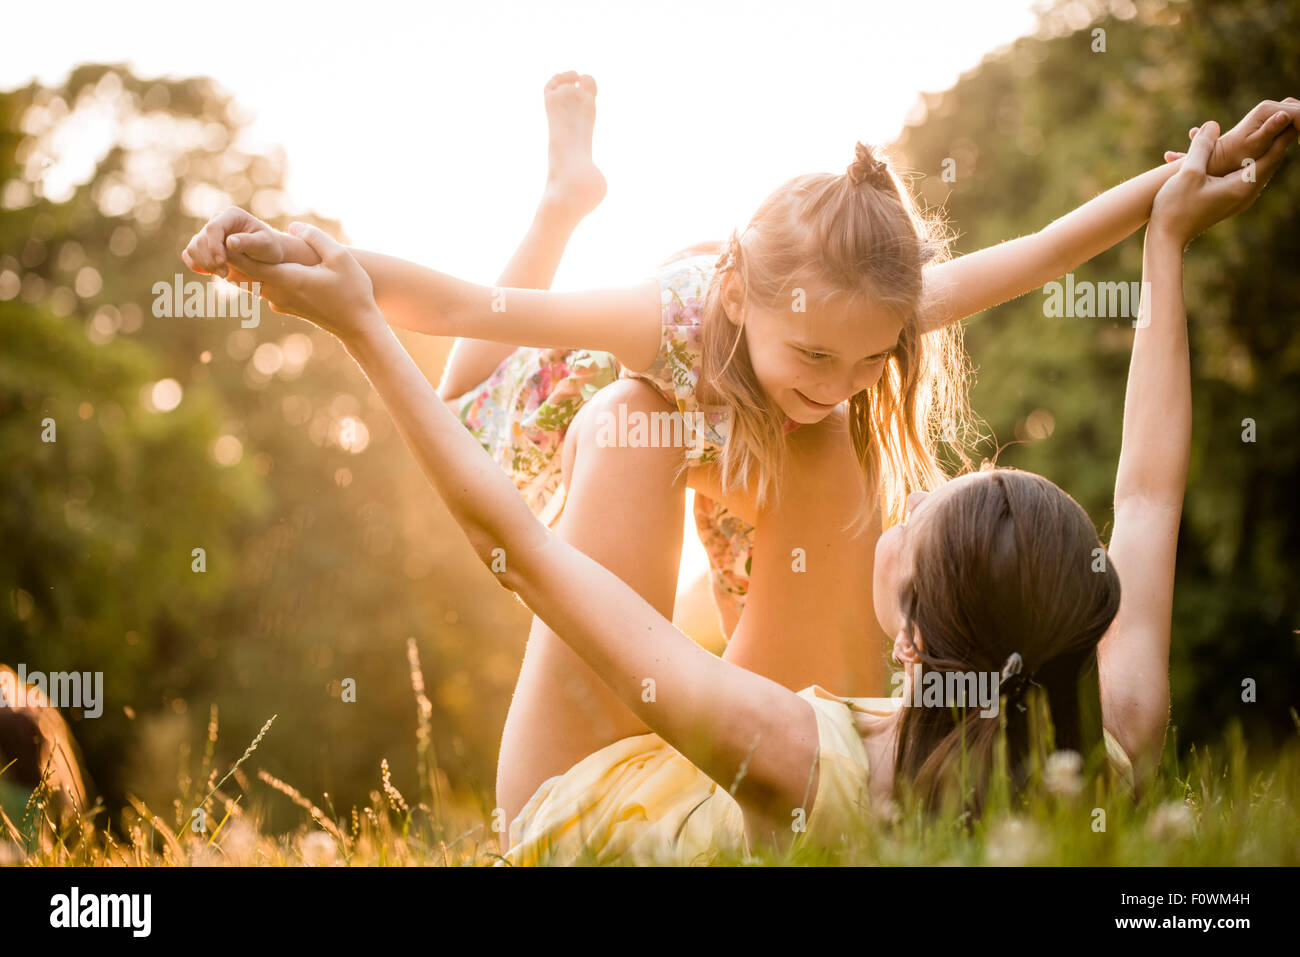 Mother lying down on grass and plays with her daughter on airplane - Stock Image